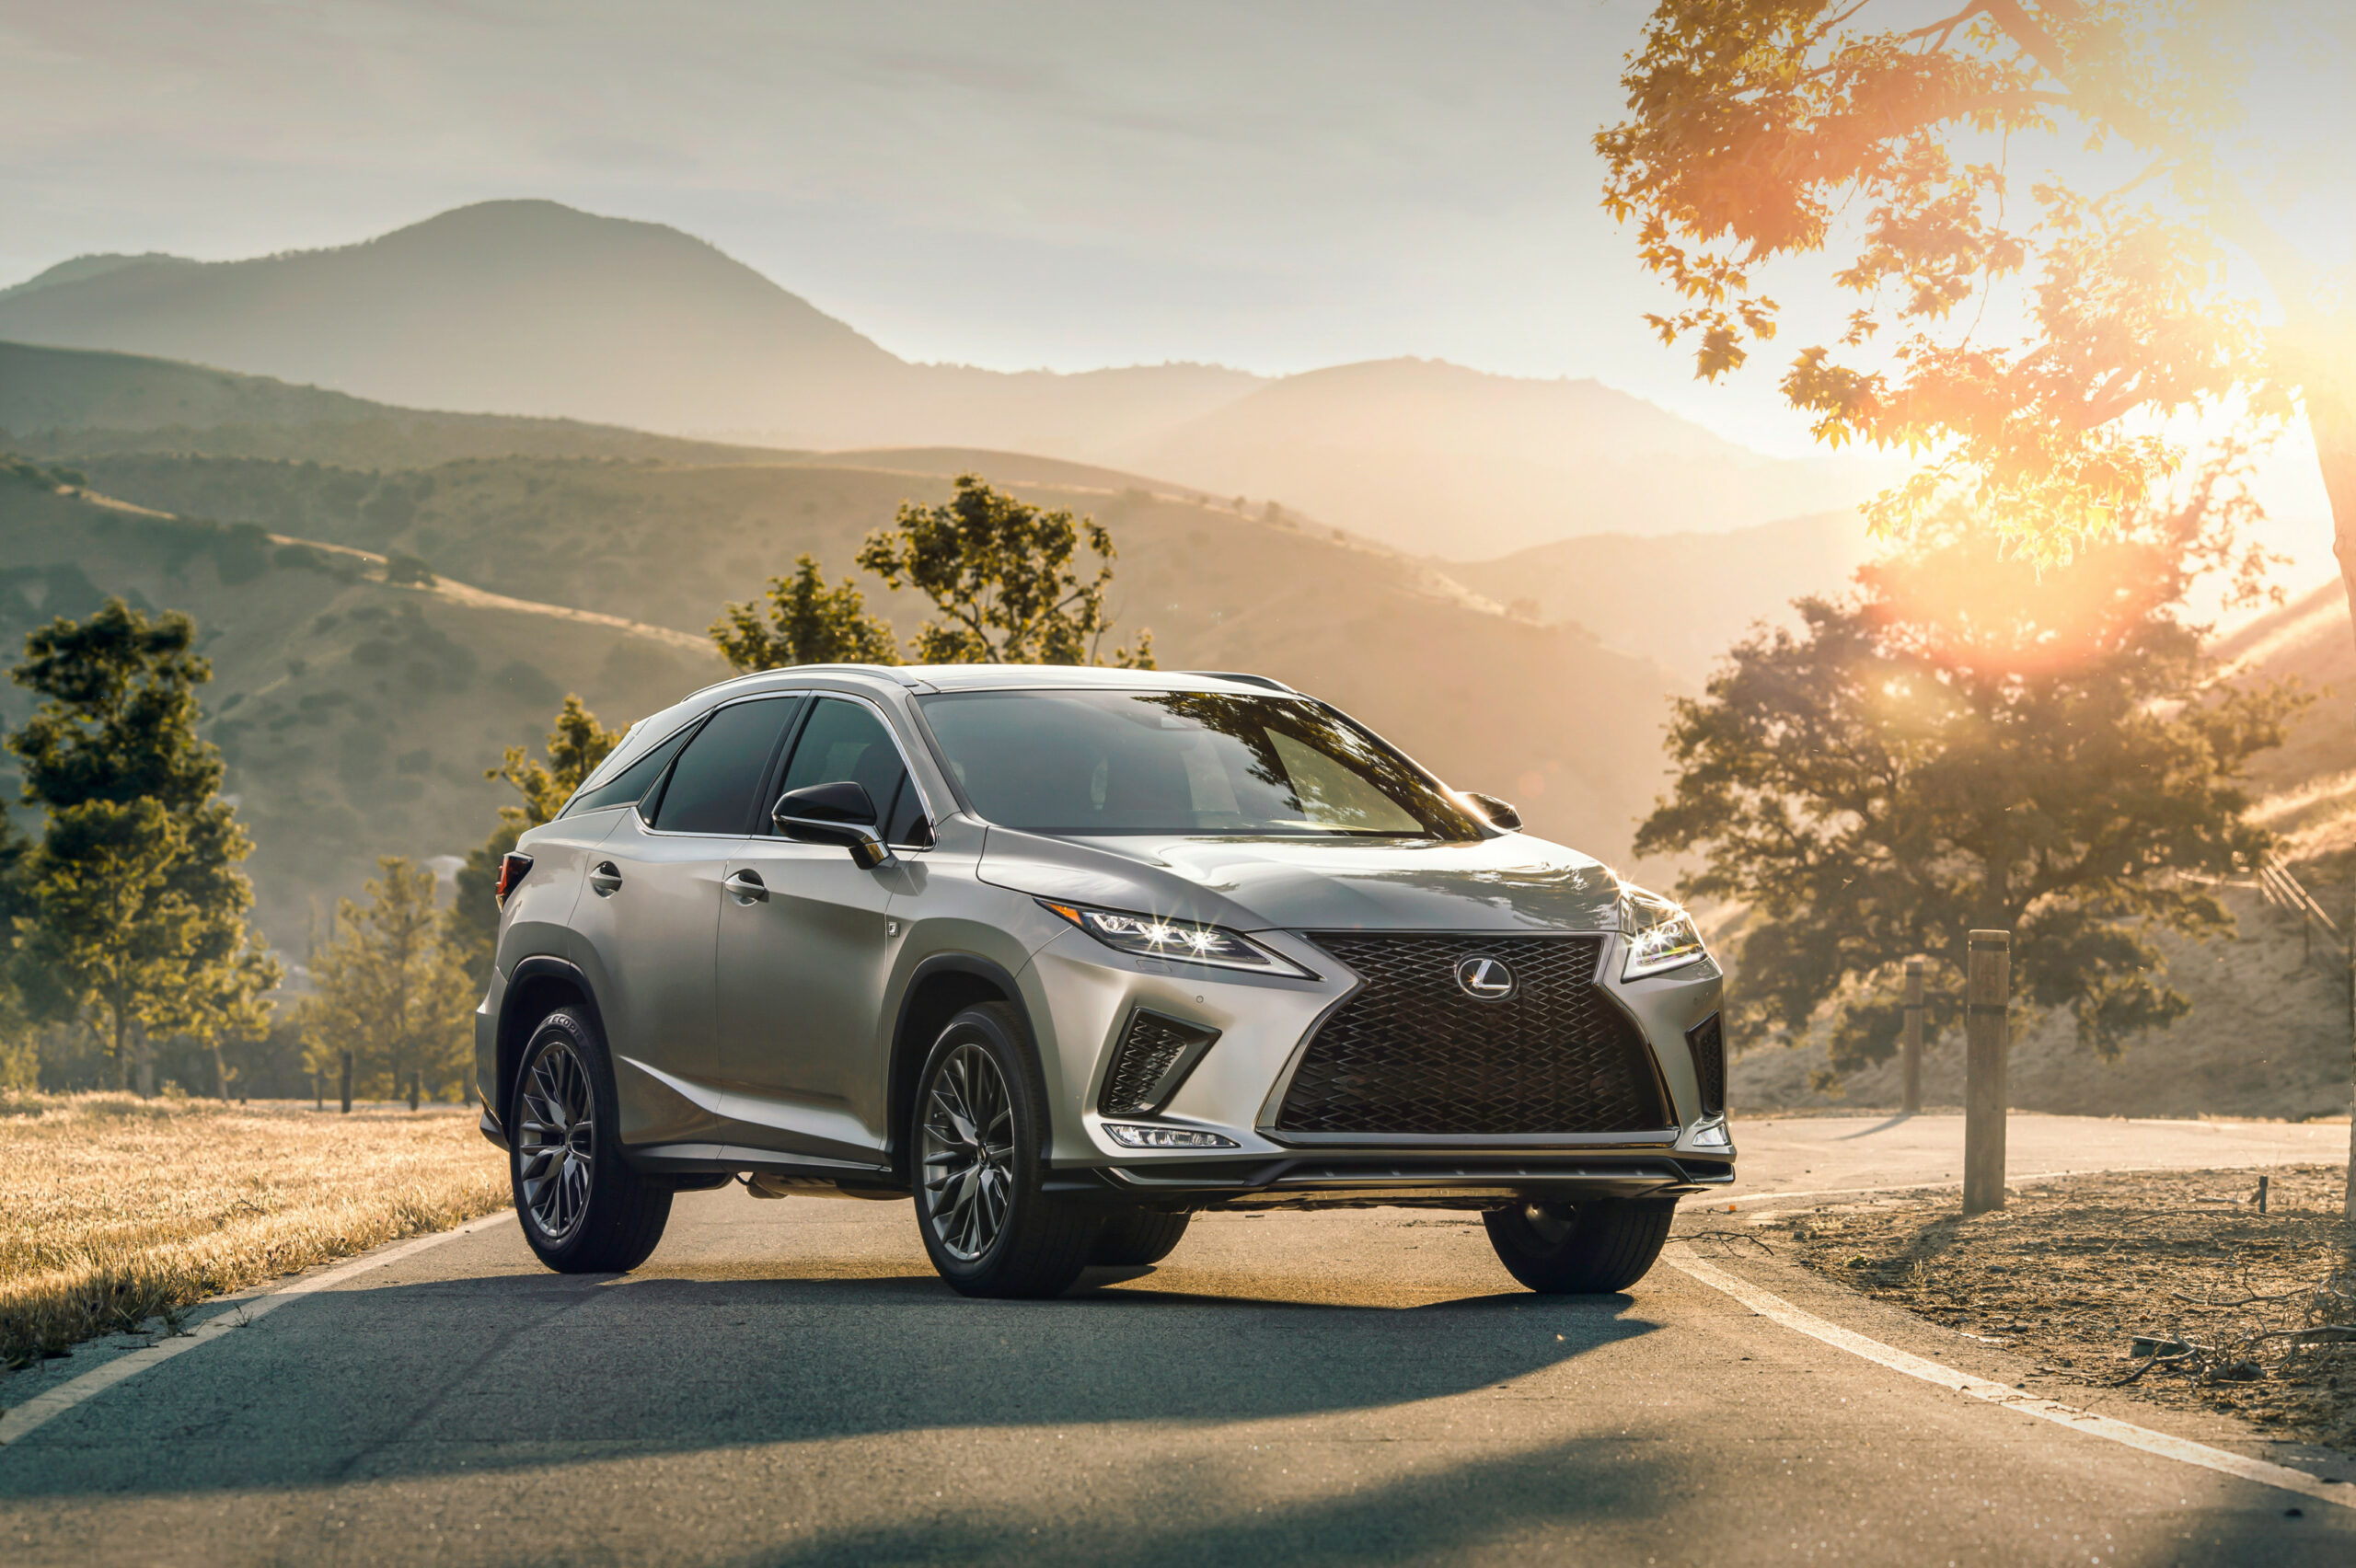 Made in Canada: The Newly Revealed 11 Lexus RX - The News Wheel